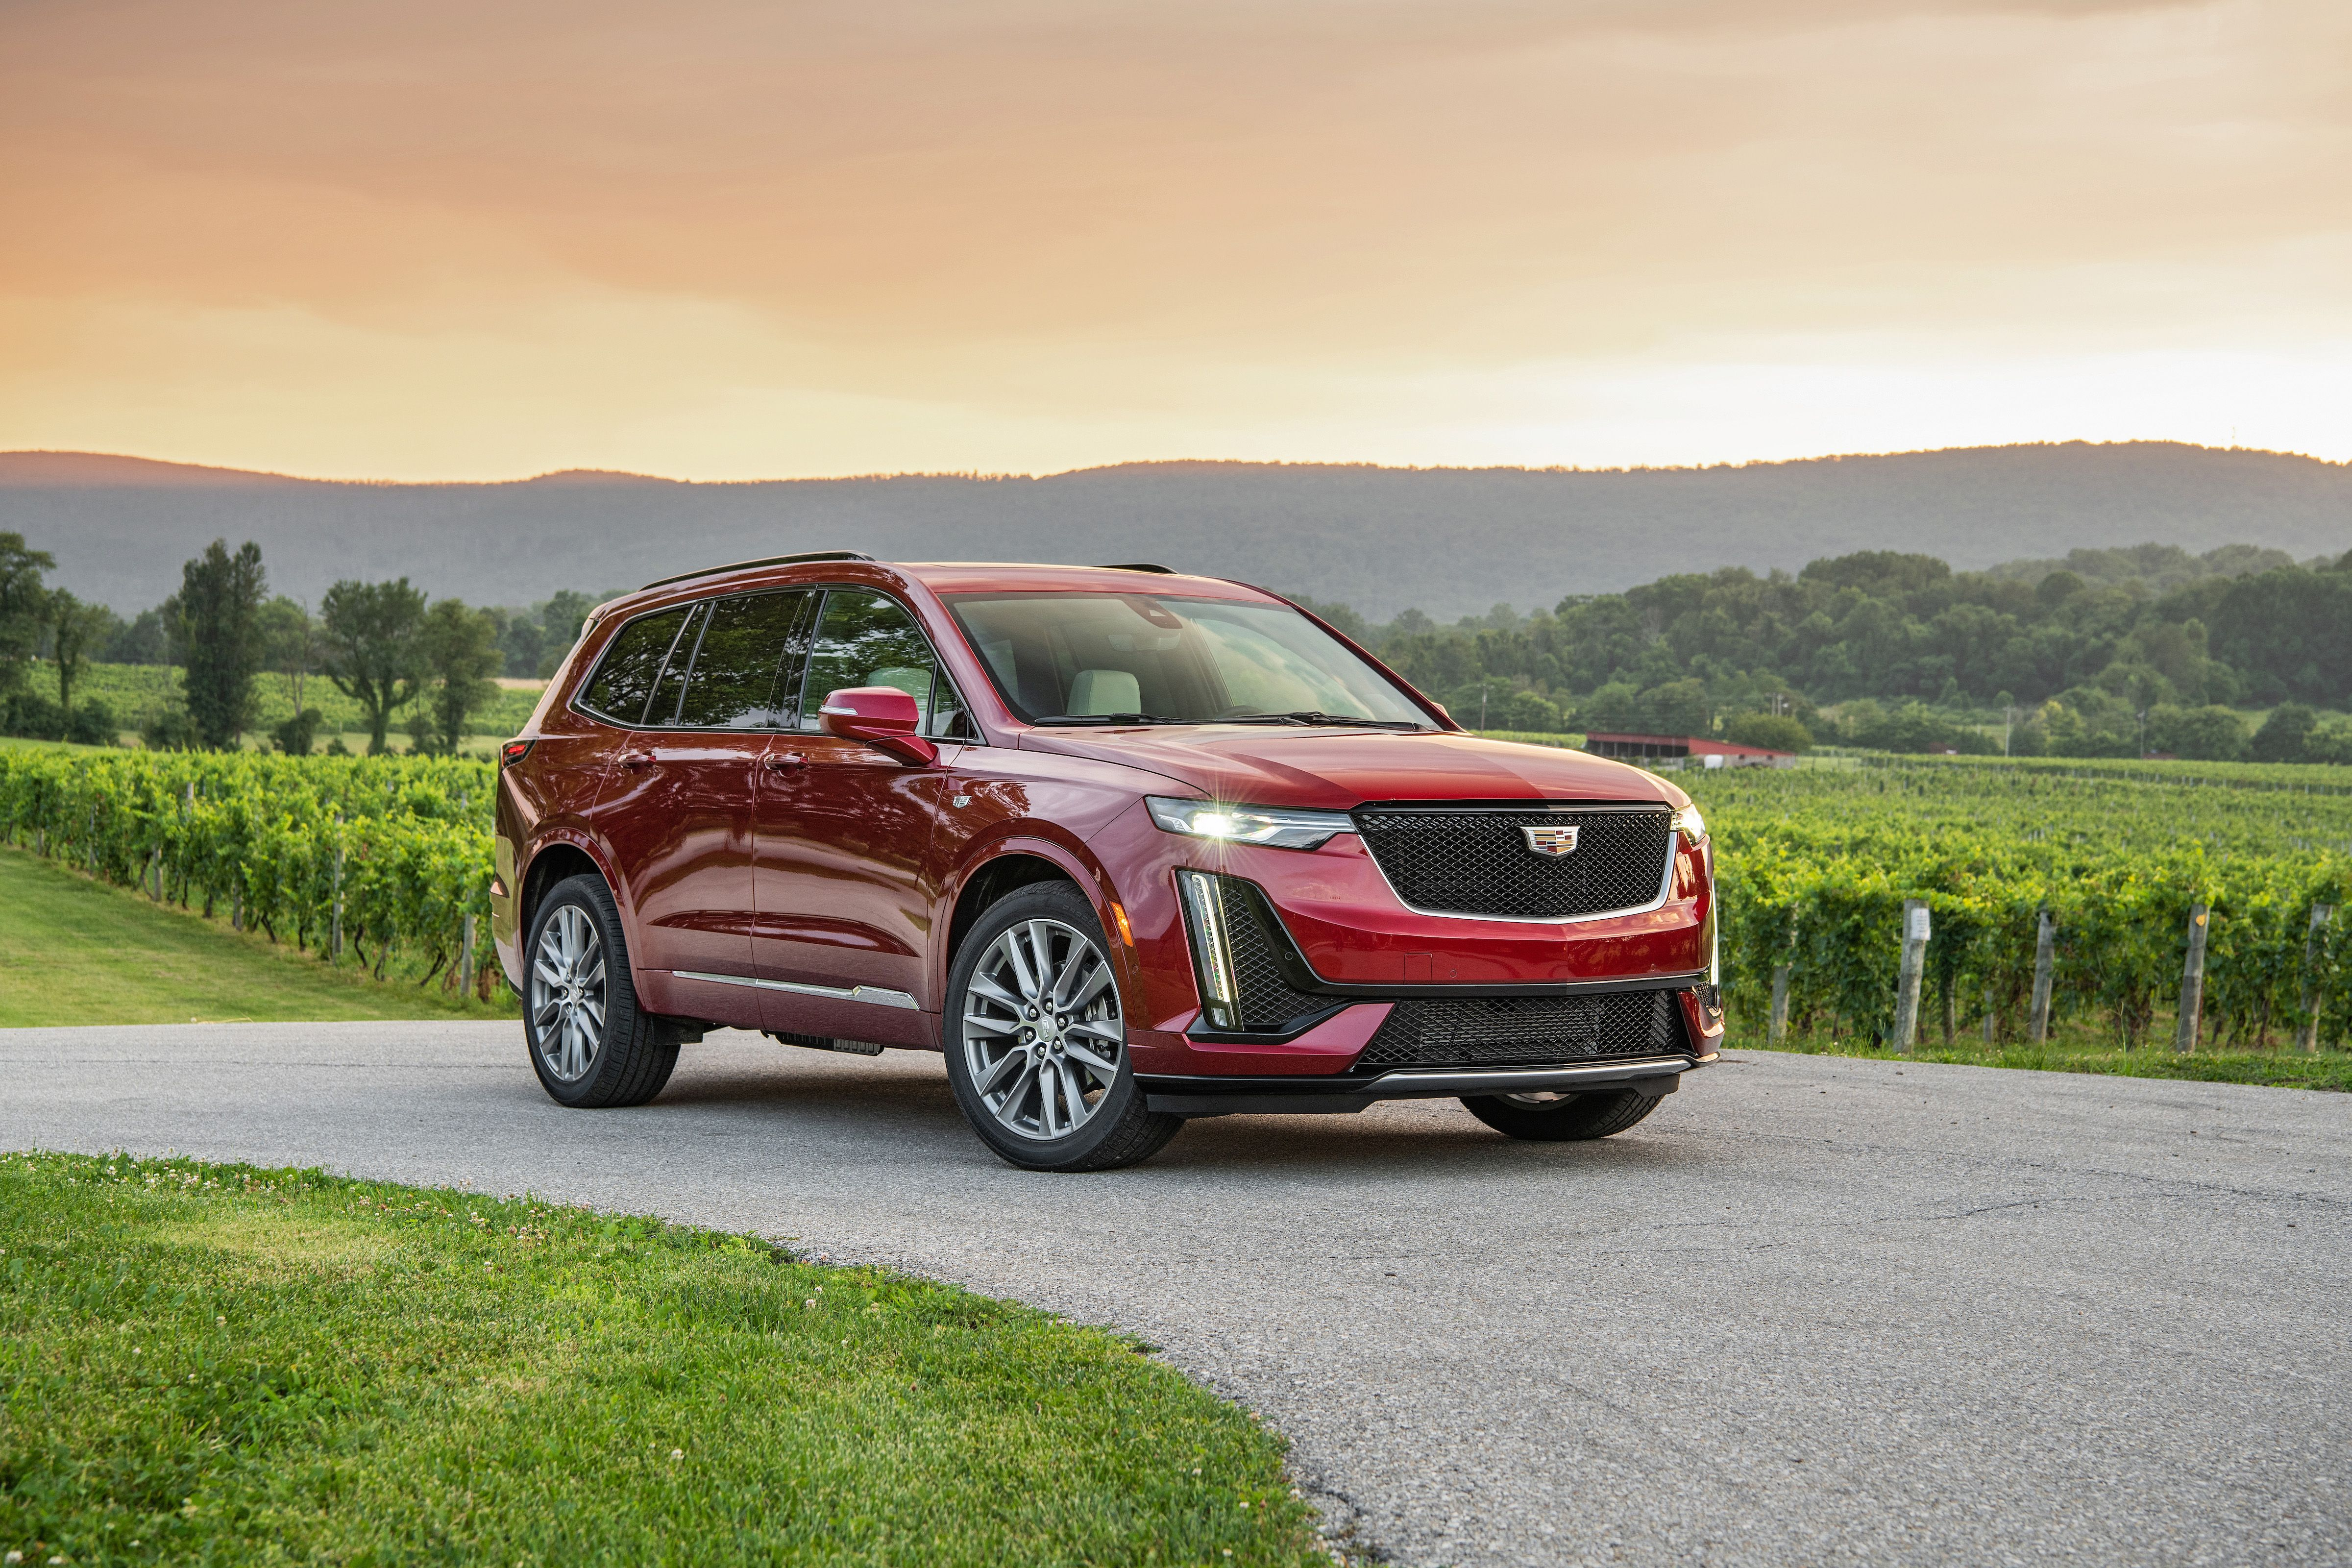 7 Crossover Suvs With The Best Safety Ratings